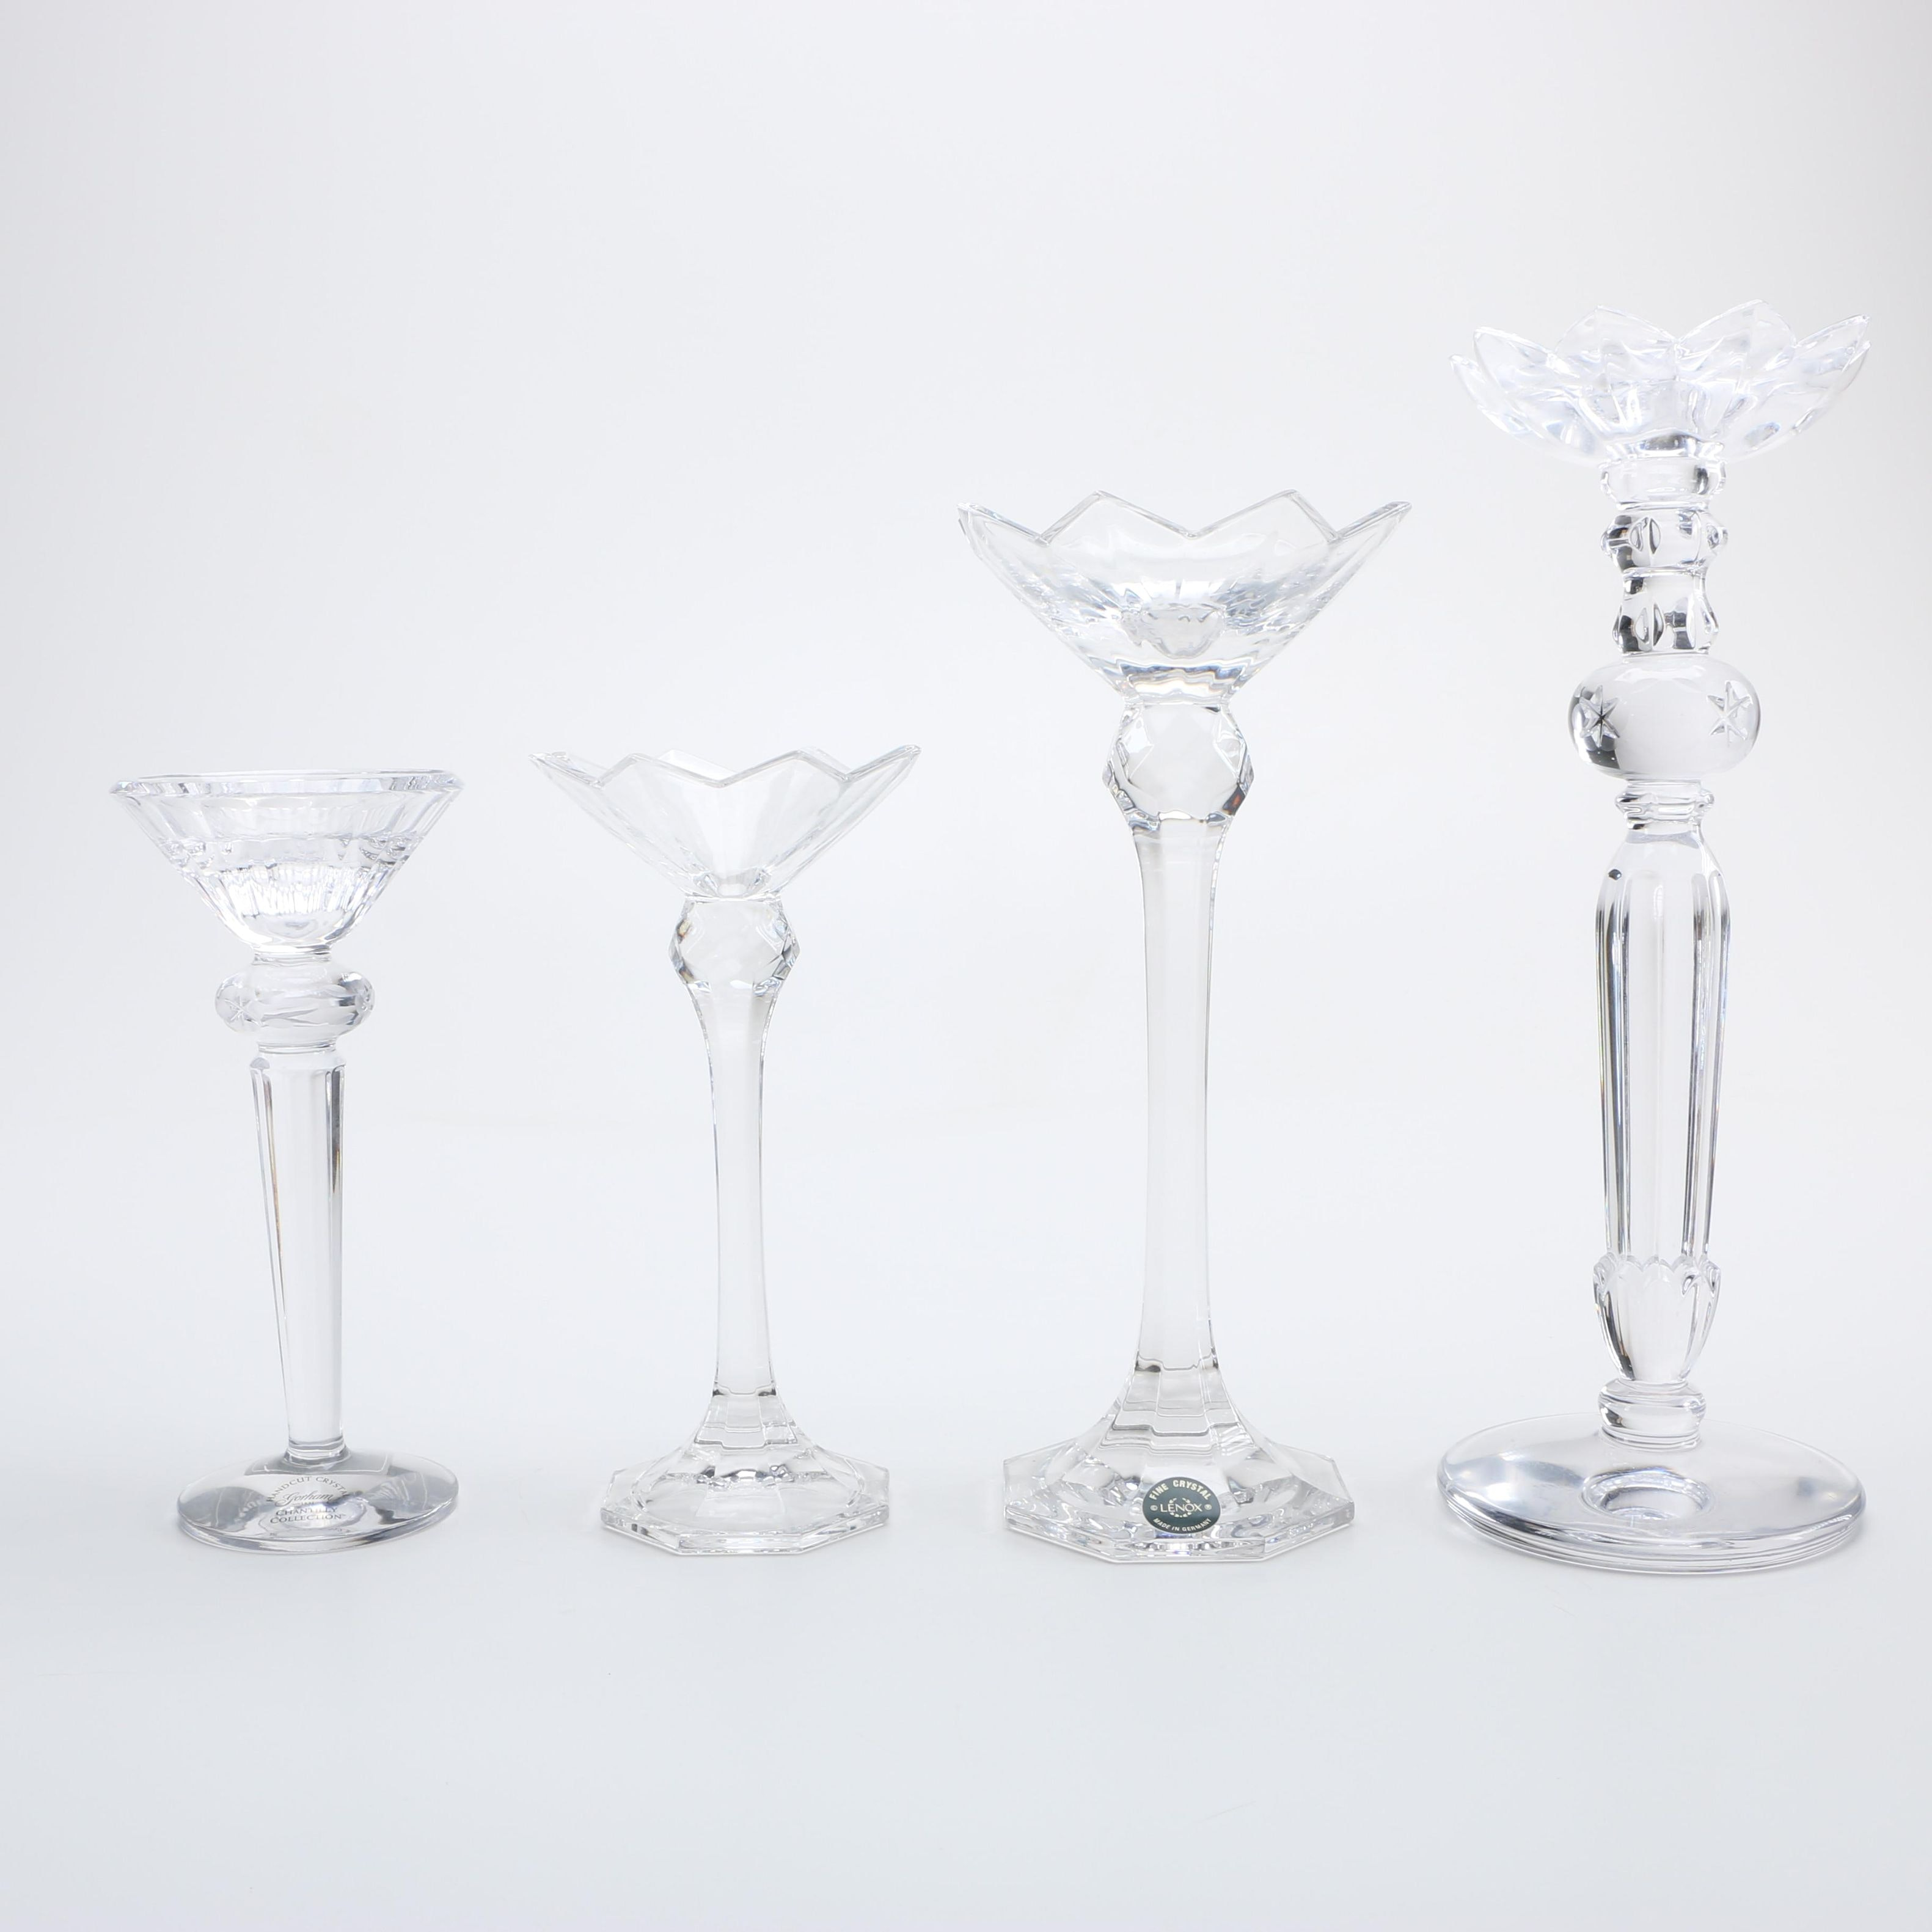 Crystal Candle Holders Including Gorham and Lenox